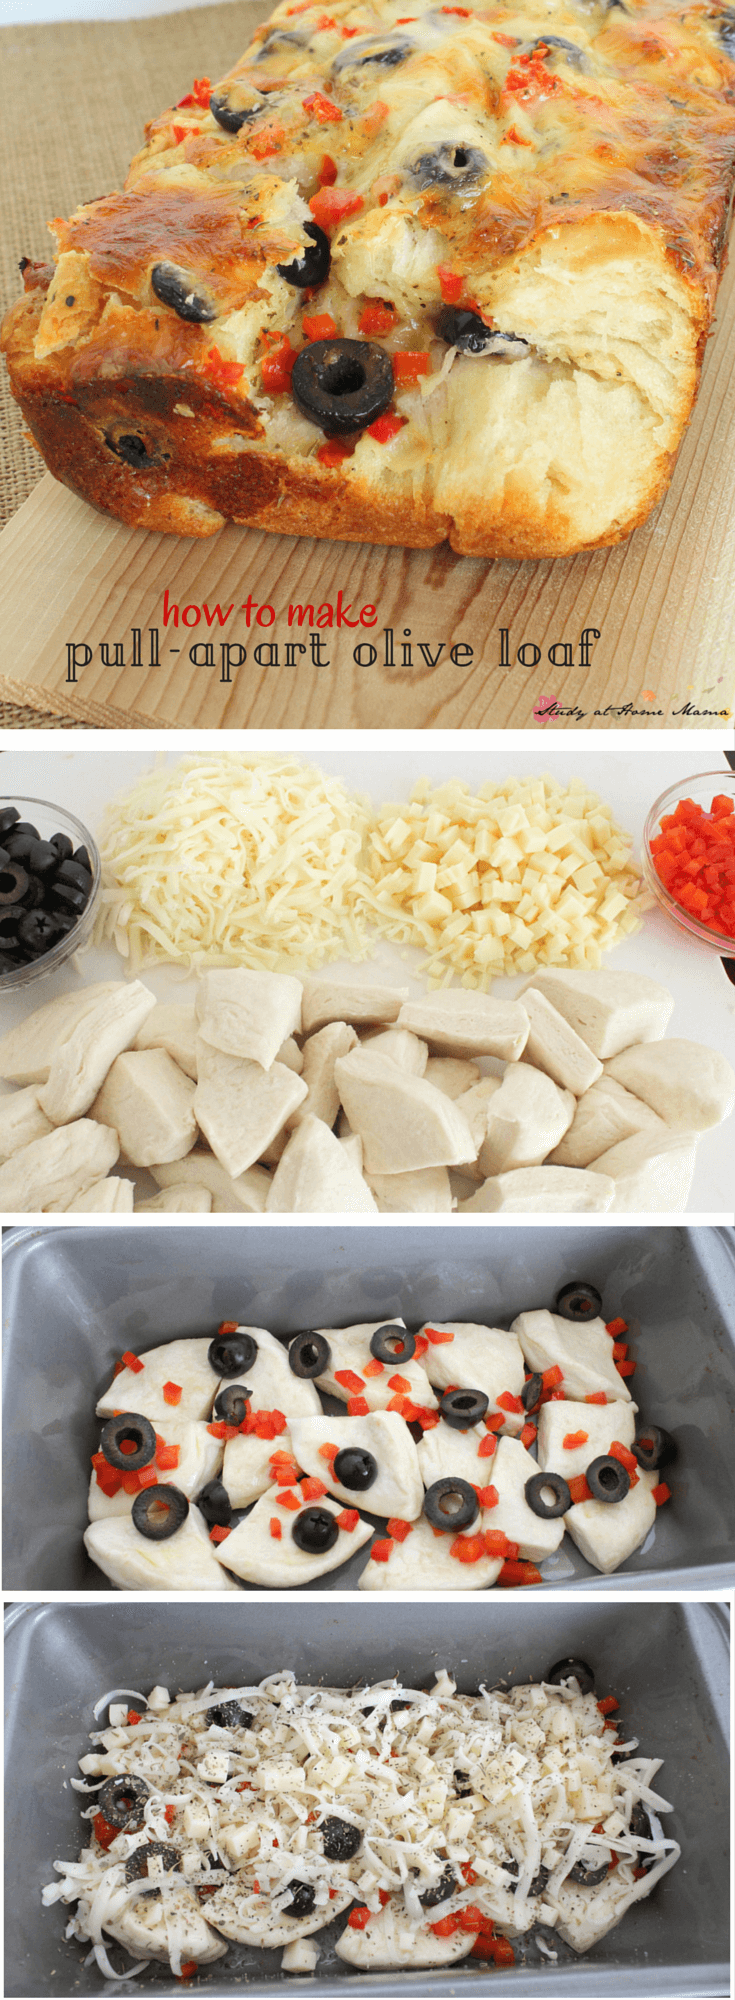 HOW TO MAKE PULL-APART BREAD. Easy Healthy Recipe for Homemade Bread: This Olive Pull-apart Loaf is an quick appetizer your whole family will love!